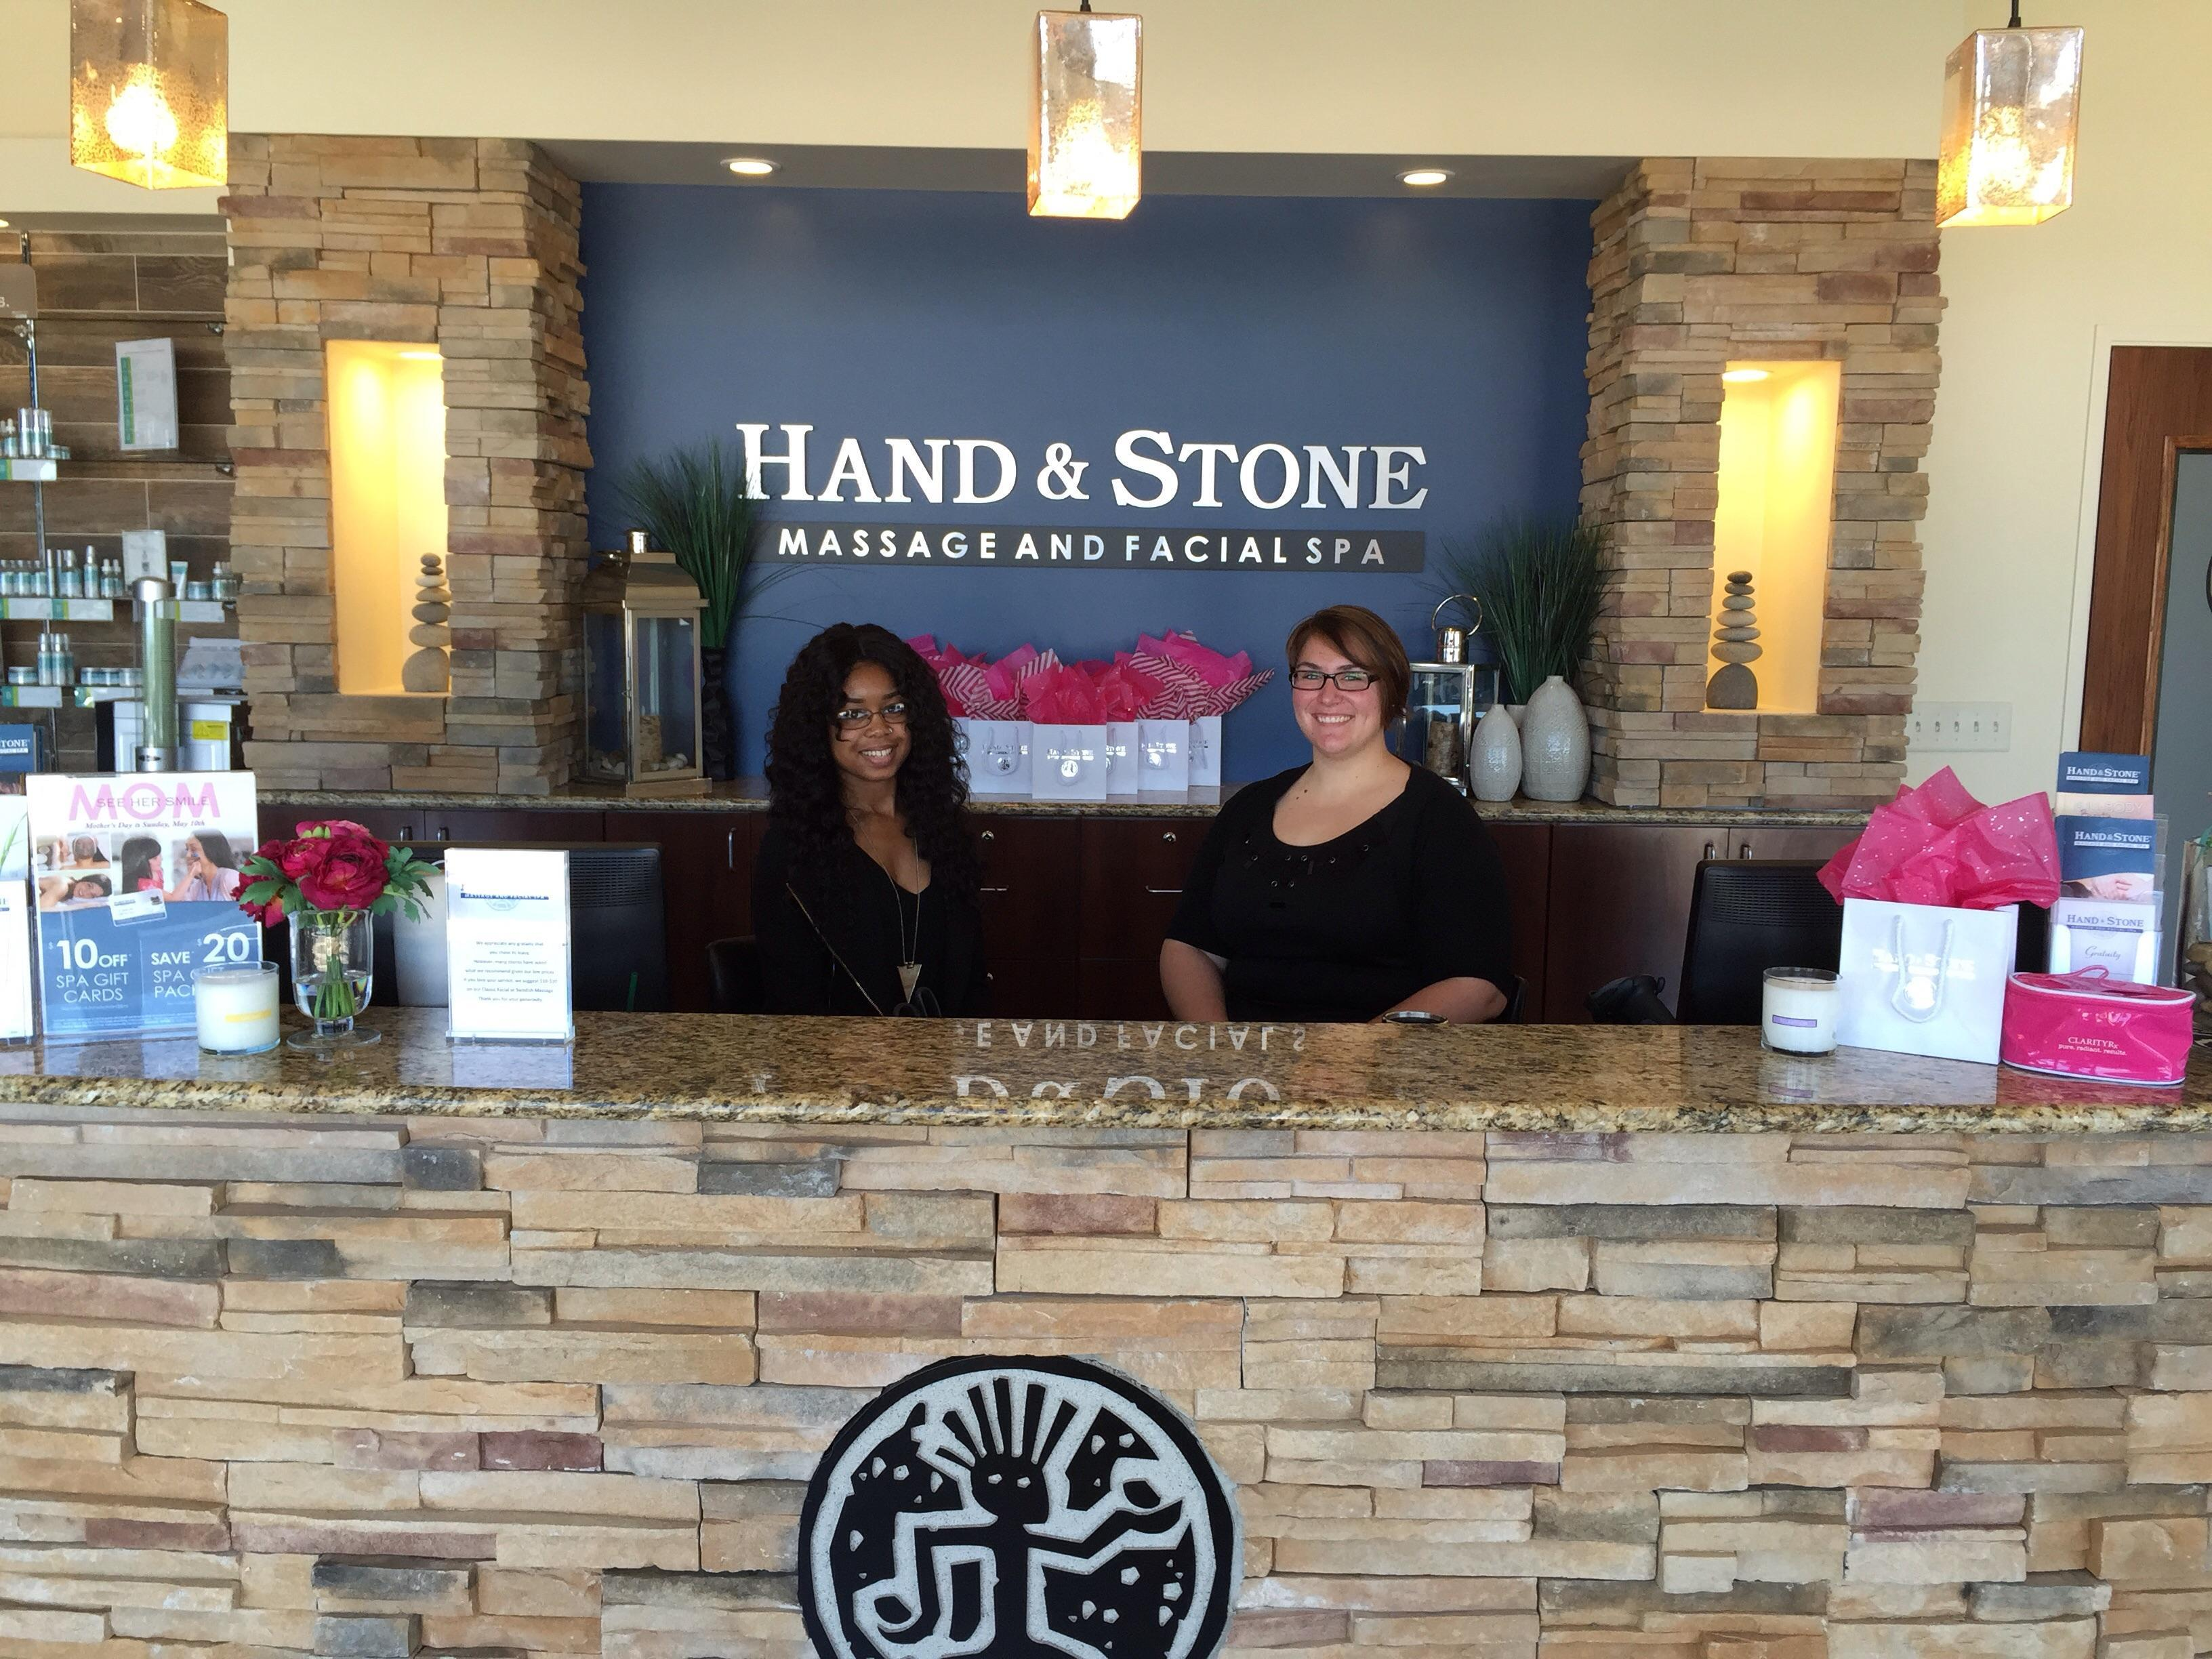 Spa Associates ready to book your next massage and facial at Hand and Stone in Plano, TX!